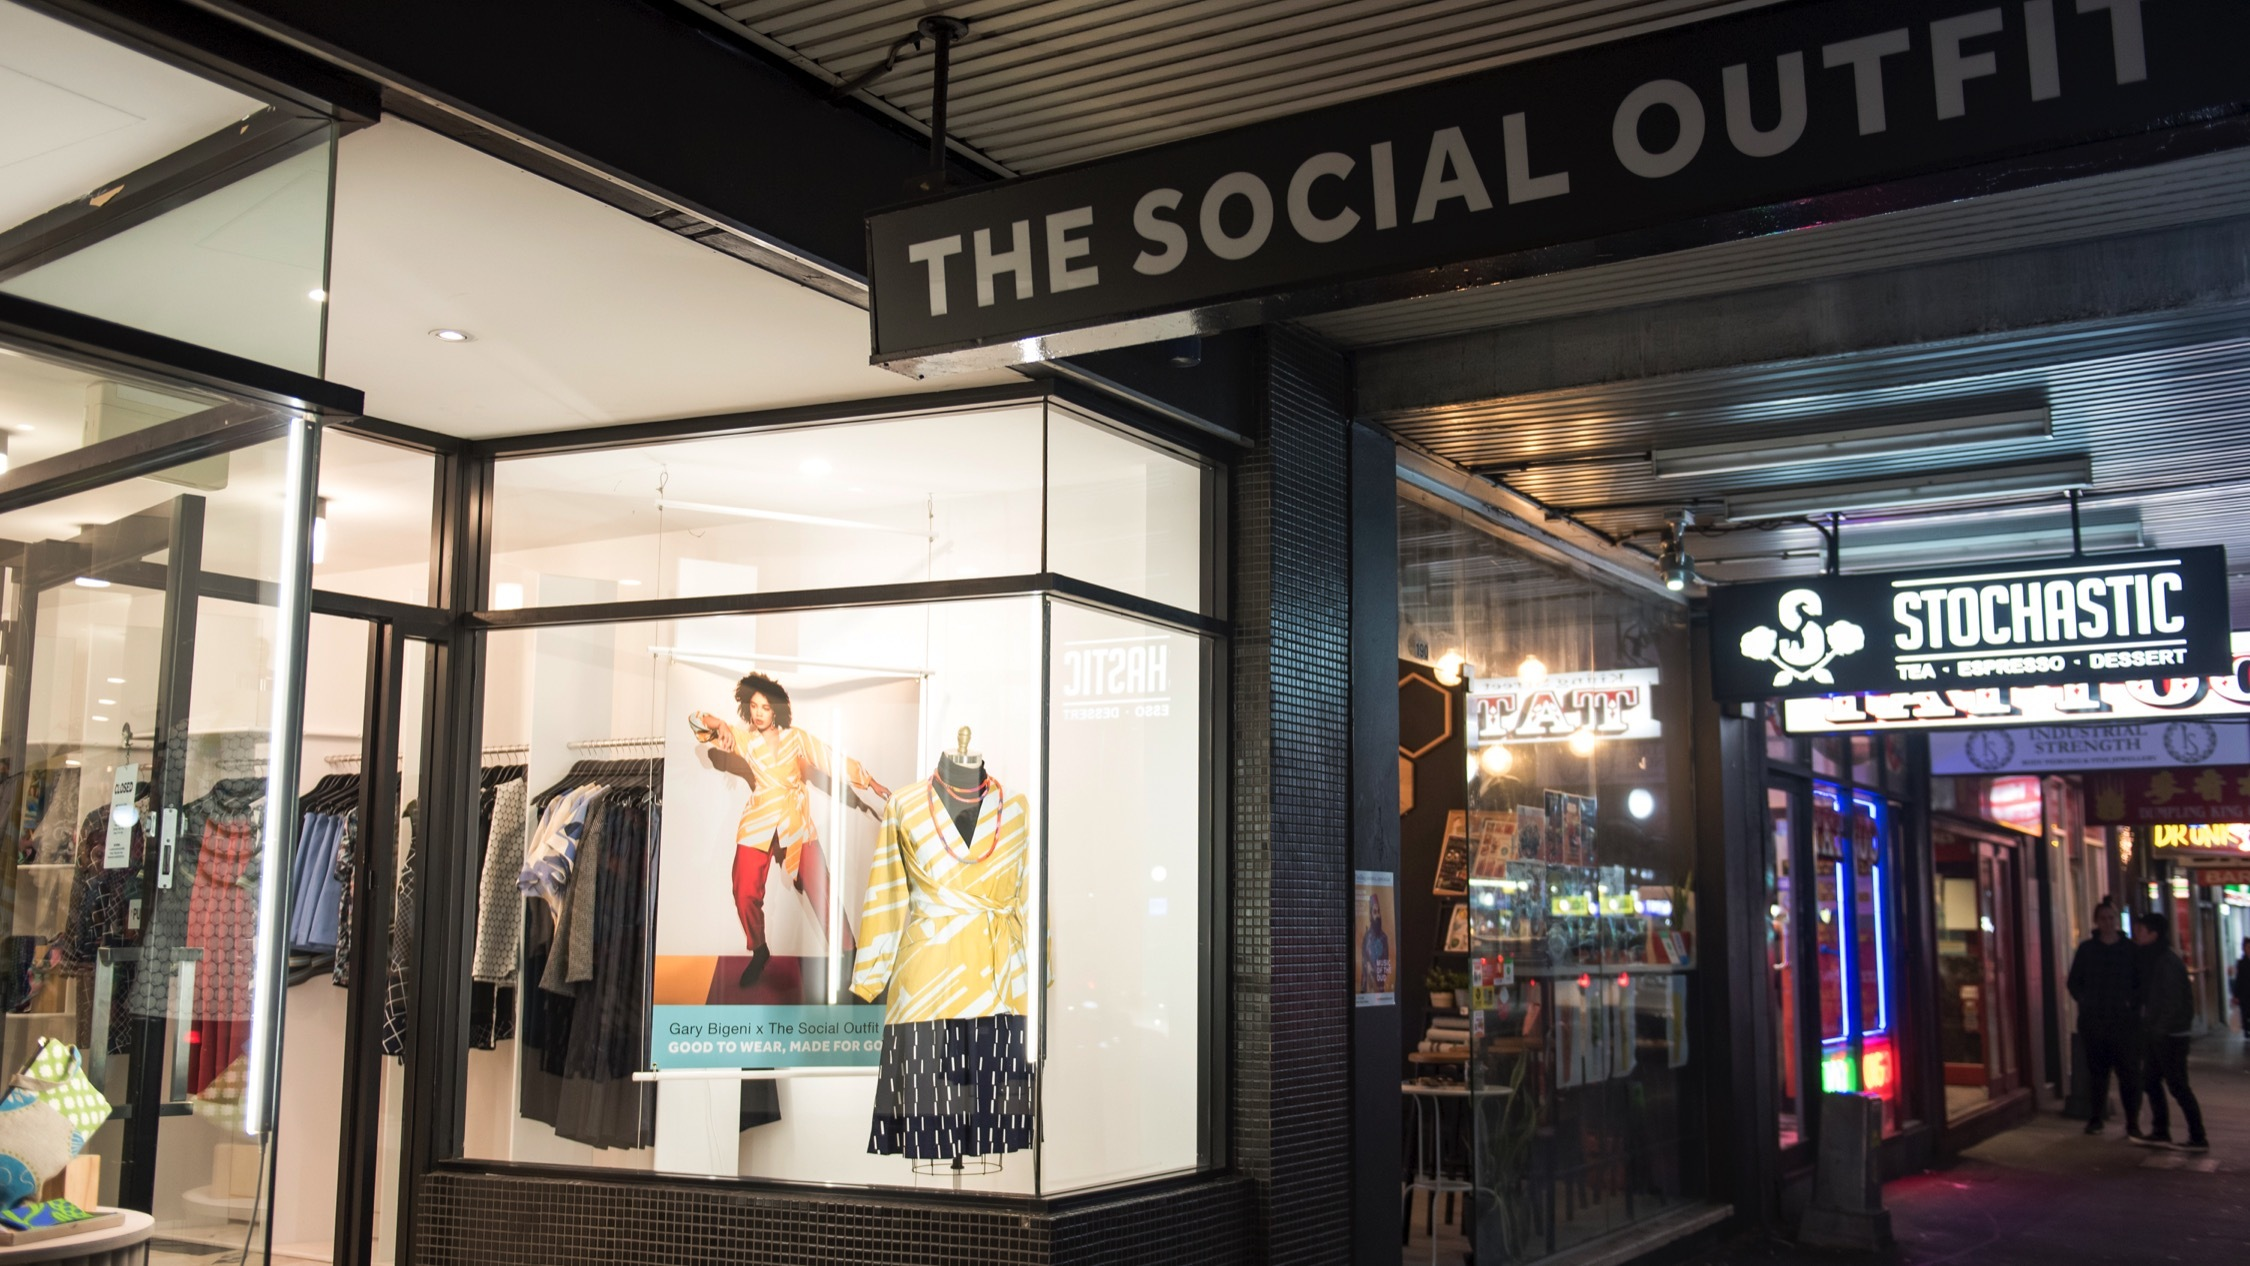 The Social Outfit